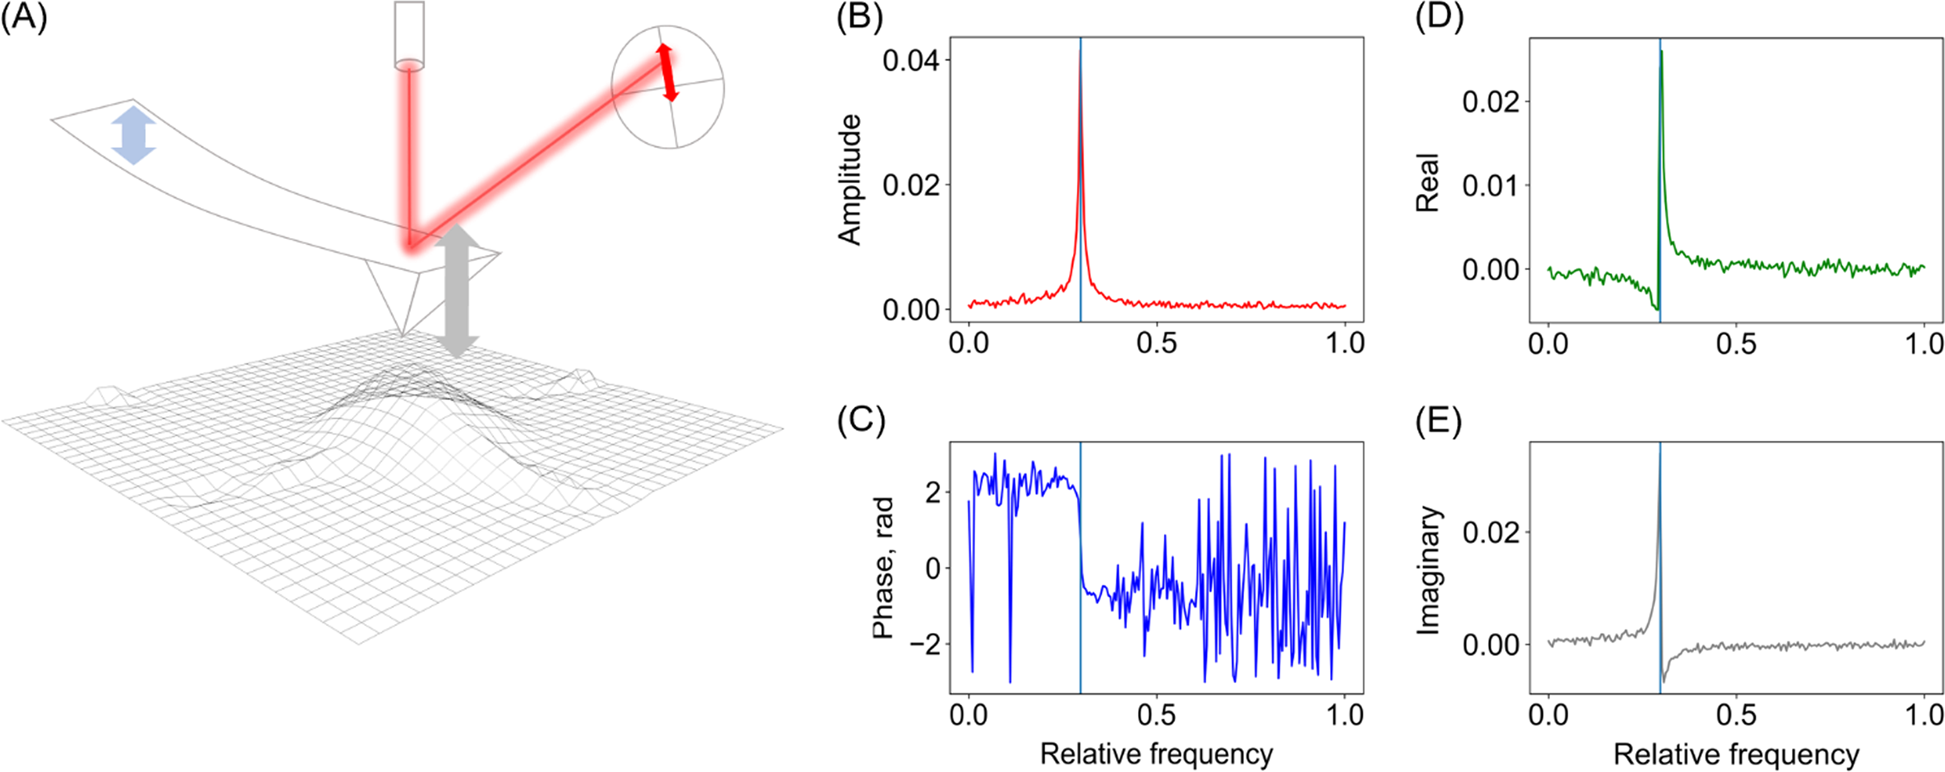 Deep neural networks for understanding noisy data applied to